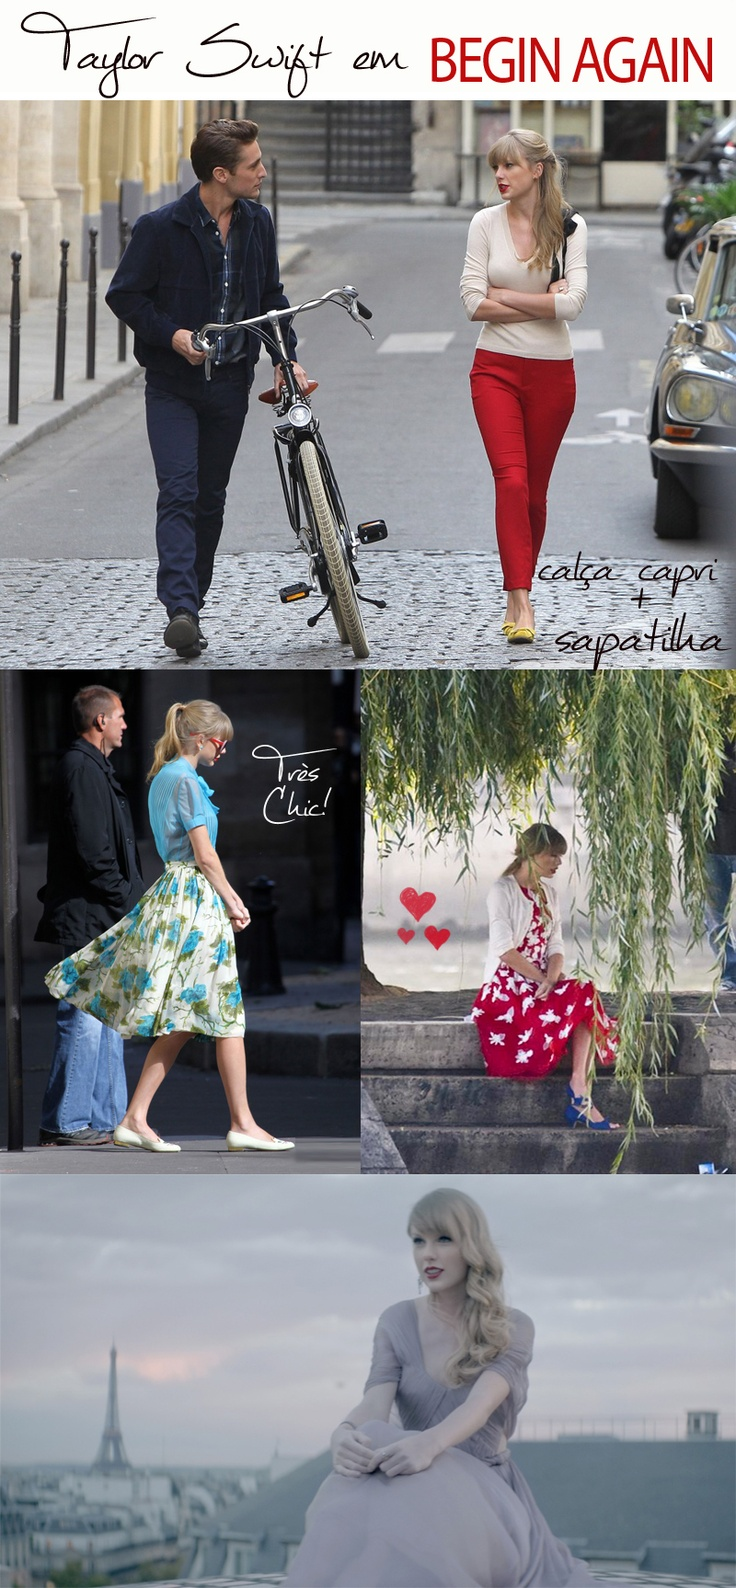 begin again by taylor swift hope Taylor swift cross my heart lyrics  thing red shake it off teardrops on my guitar delicate blank space my own way begin again like  my heart and hope for.